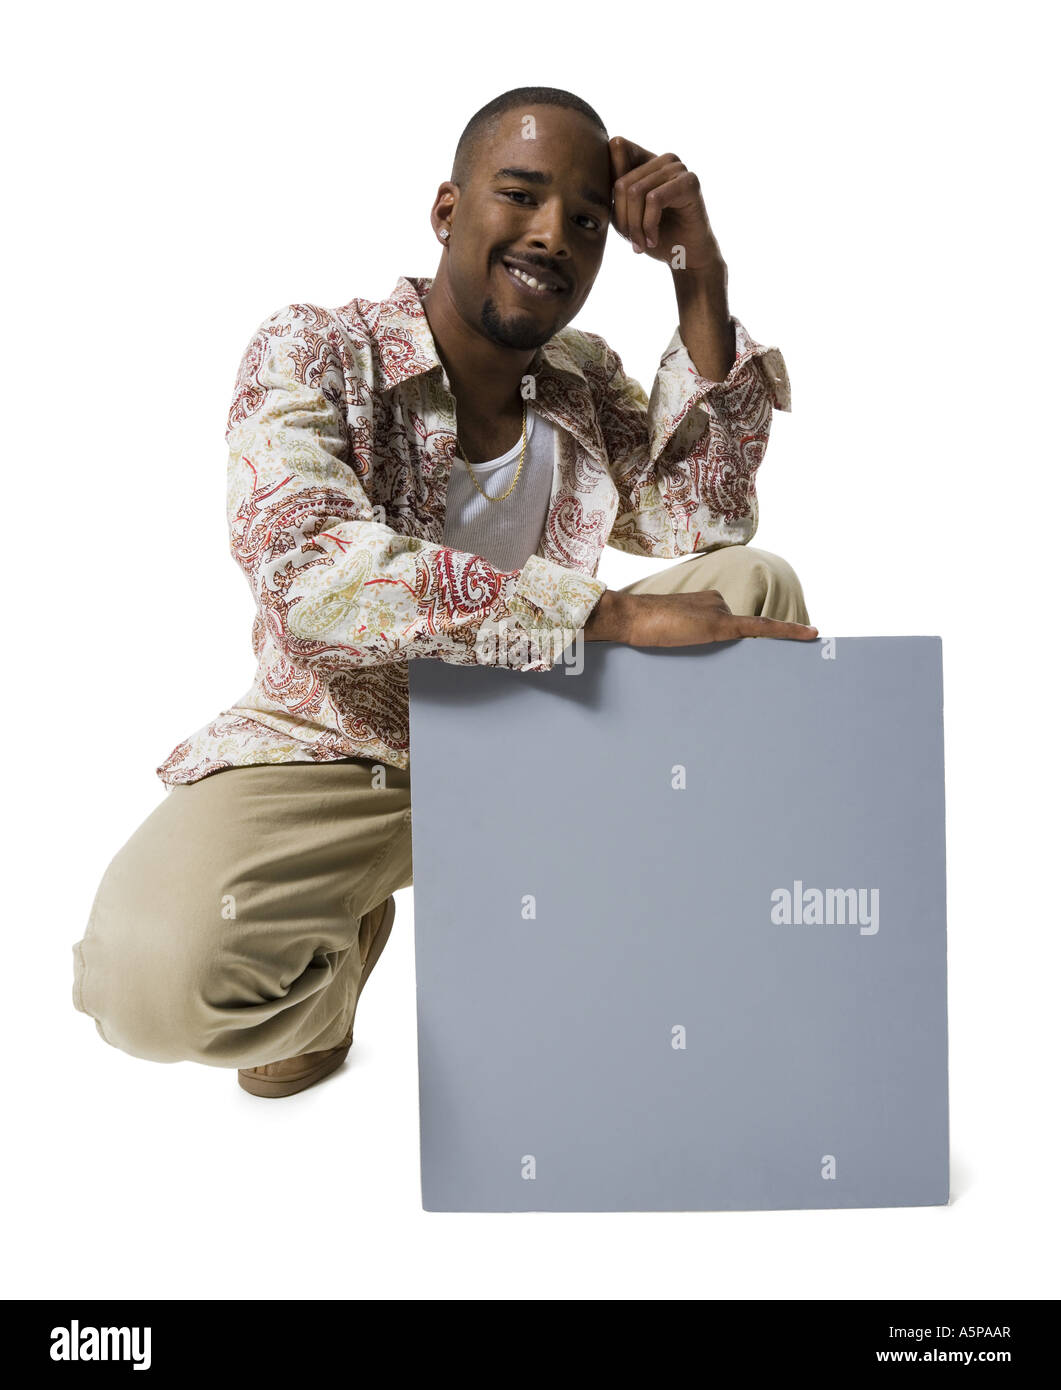 African American man holding a blank sign - Stock Image